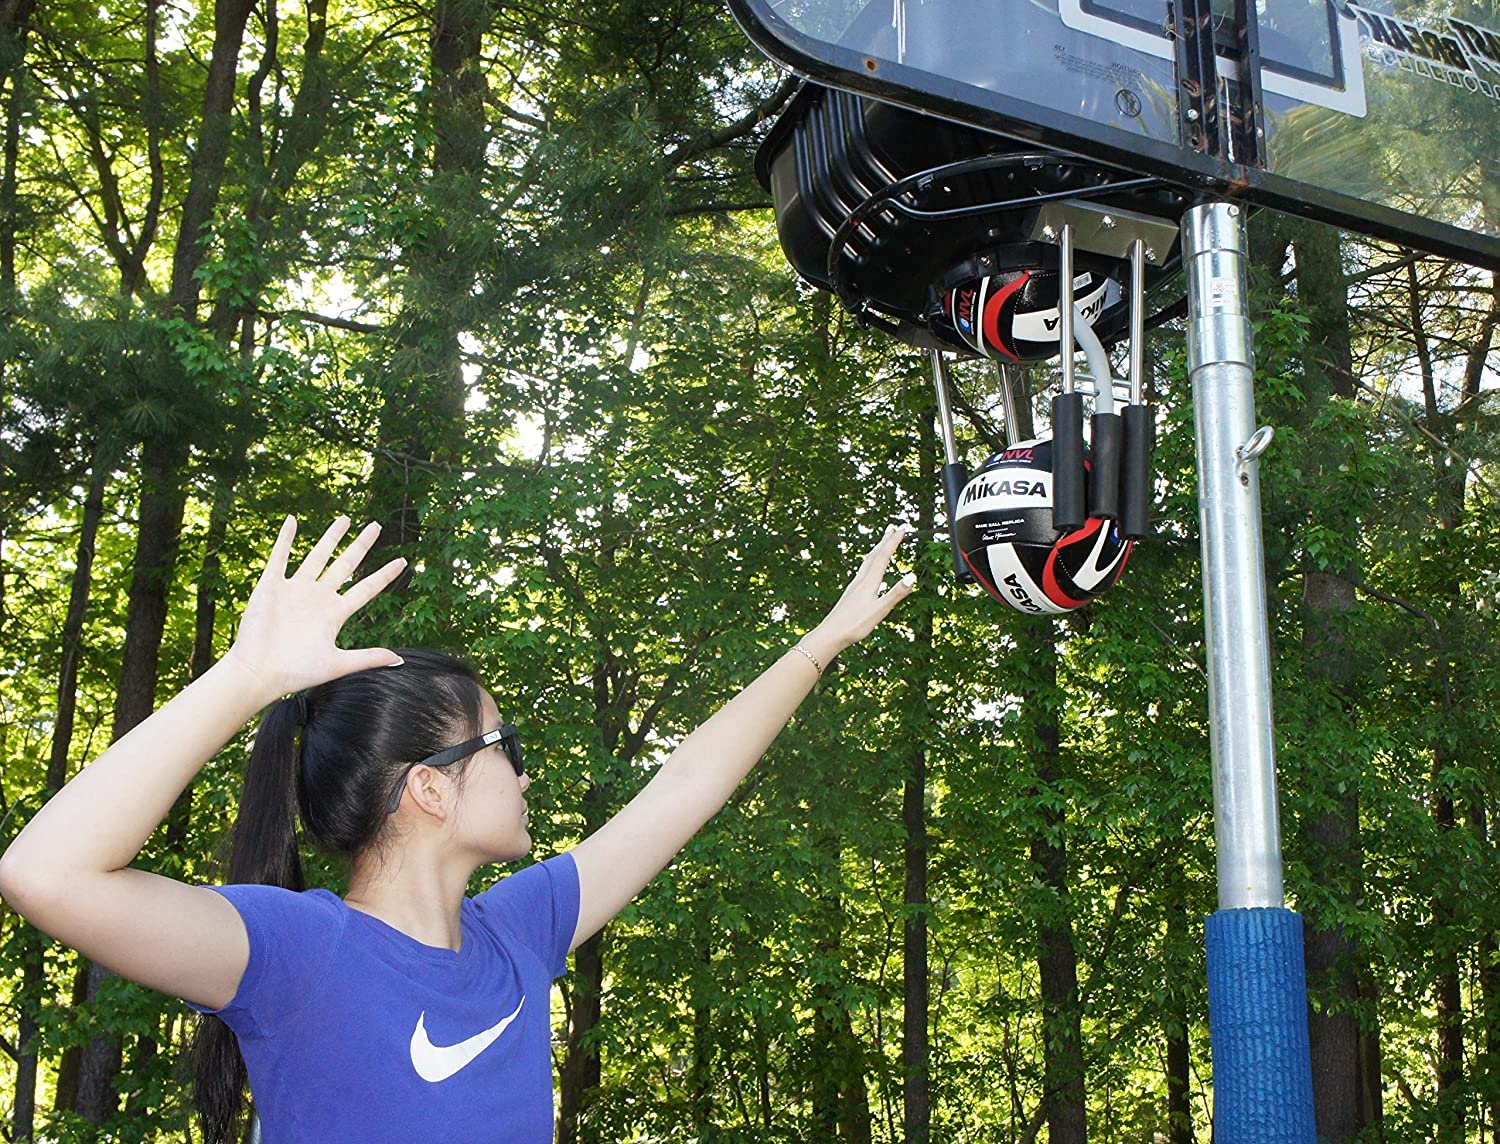 Volleyball Training Aid - Smart Spike System. : Sports & Outdoors